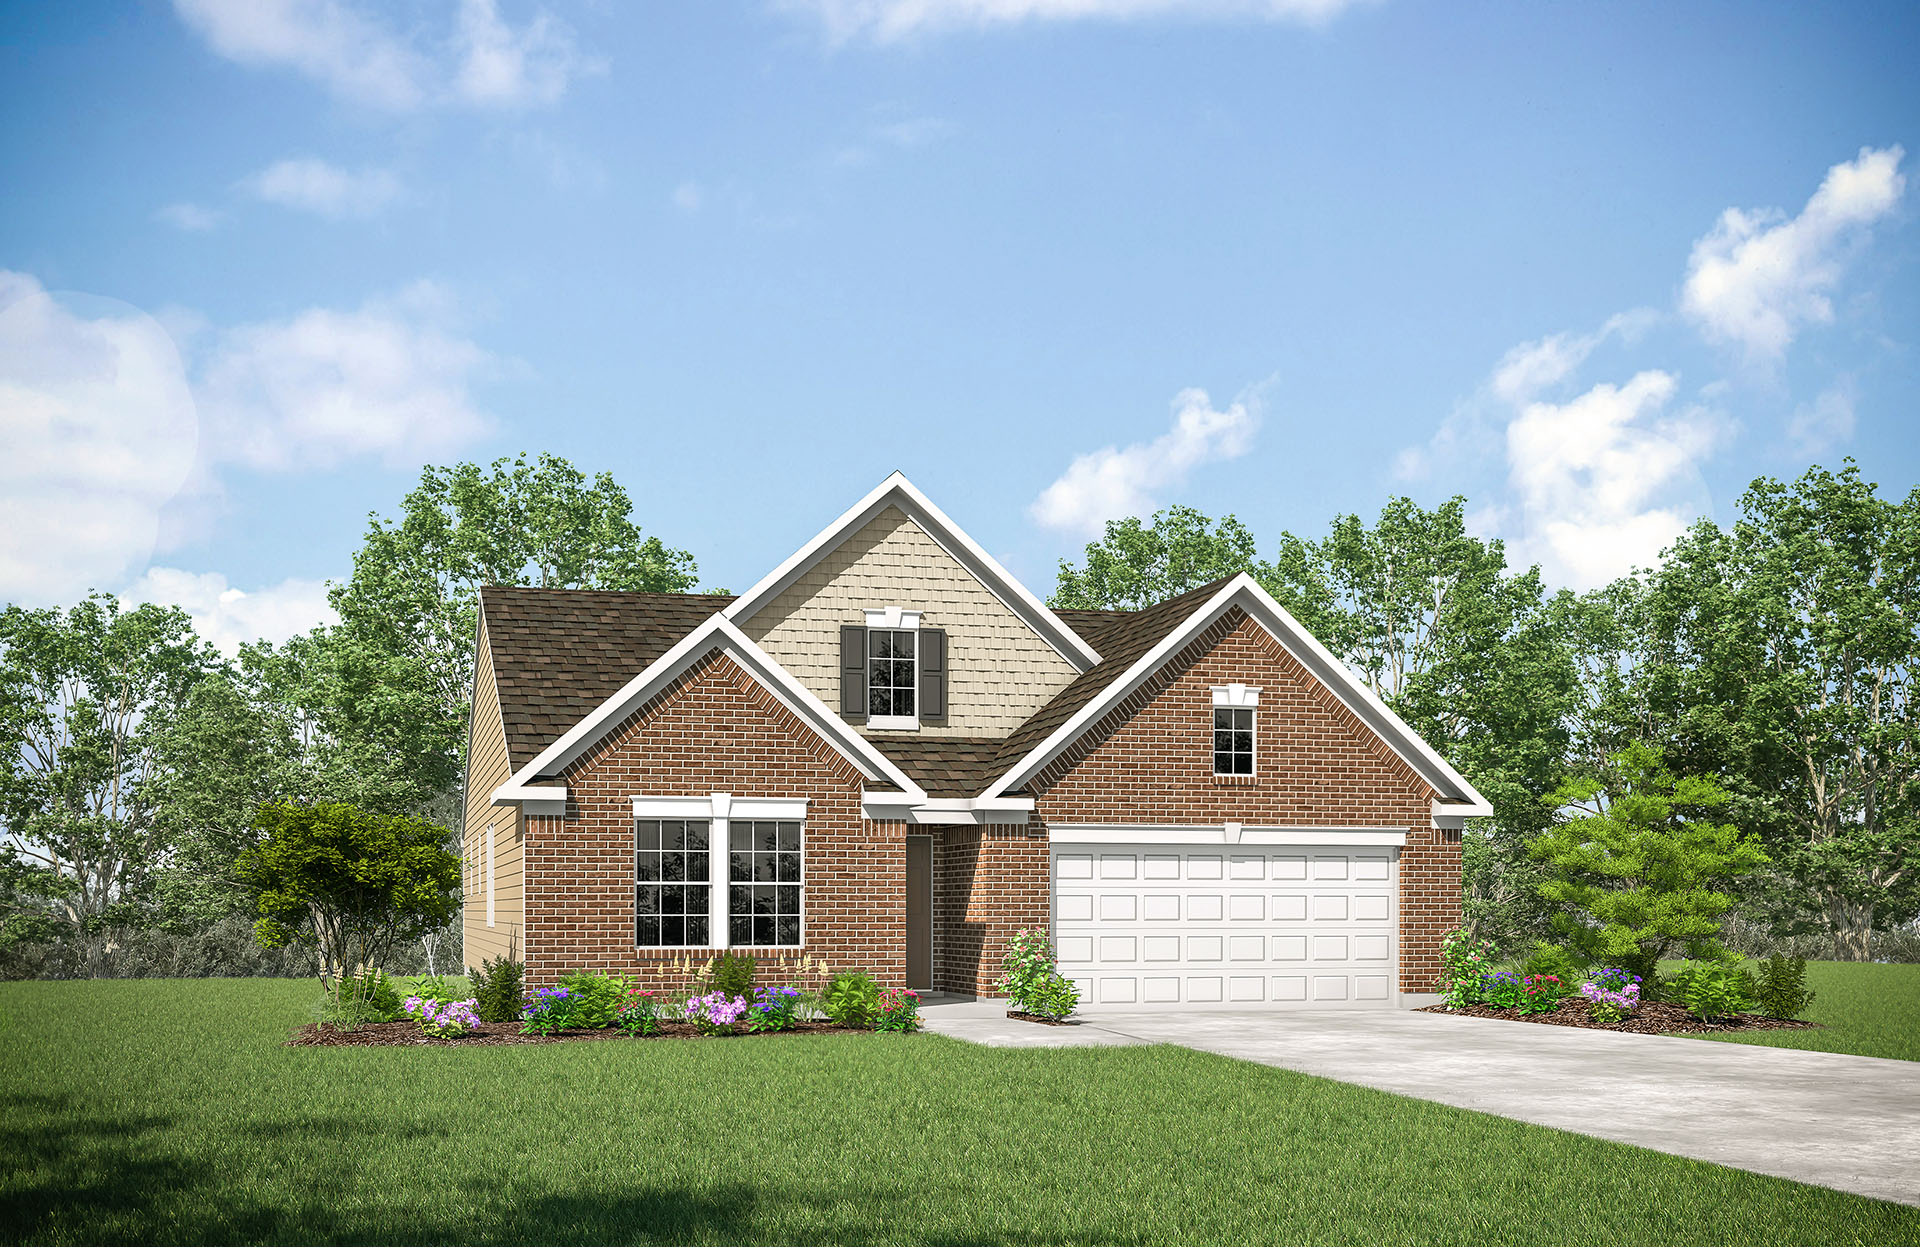 The San Carlo - MLS# 1350528 - 1613 Oak Grove Ln.